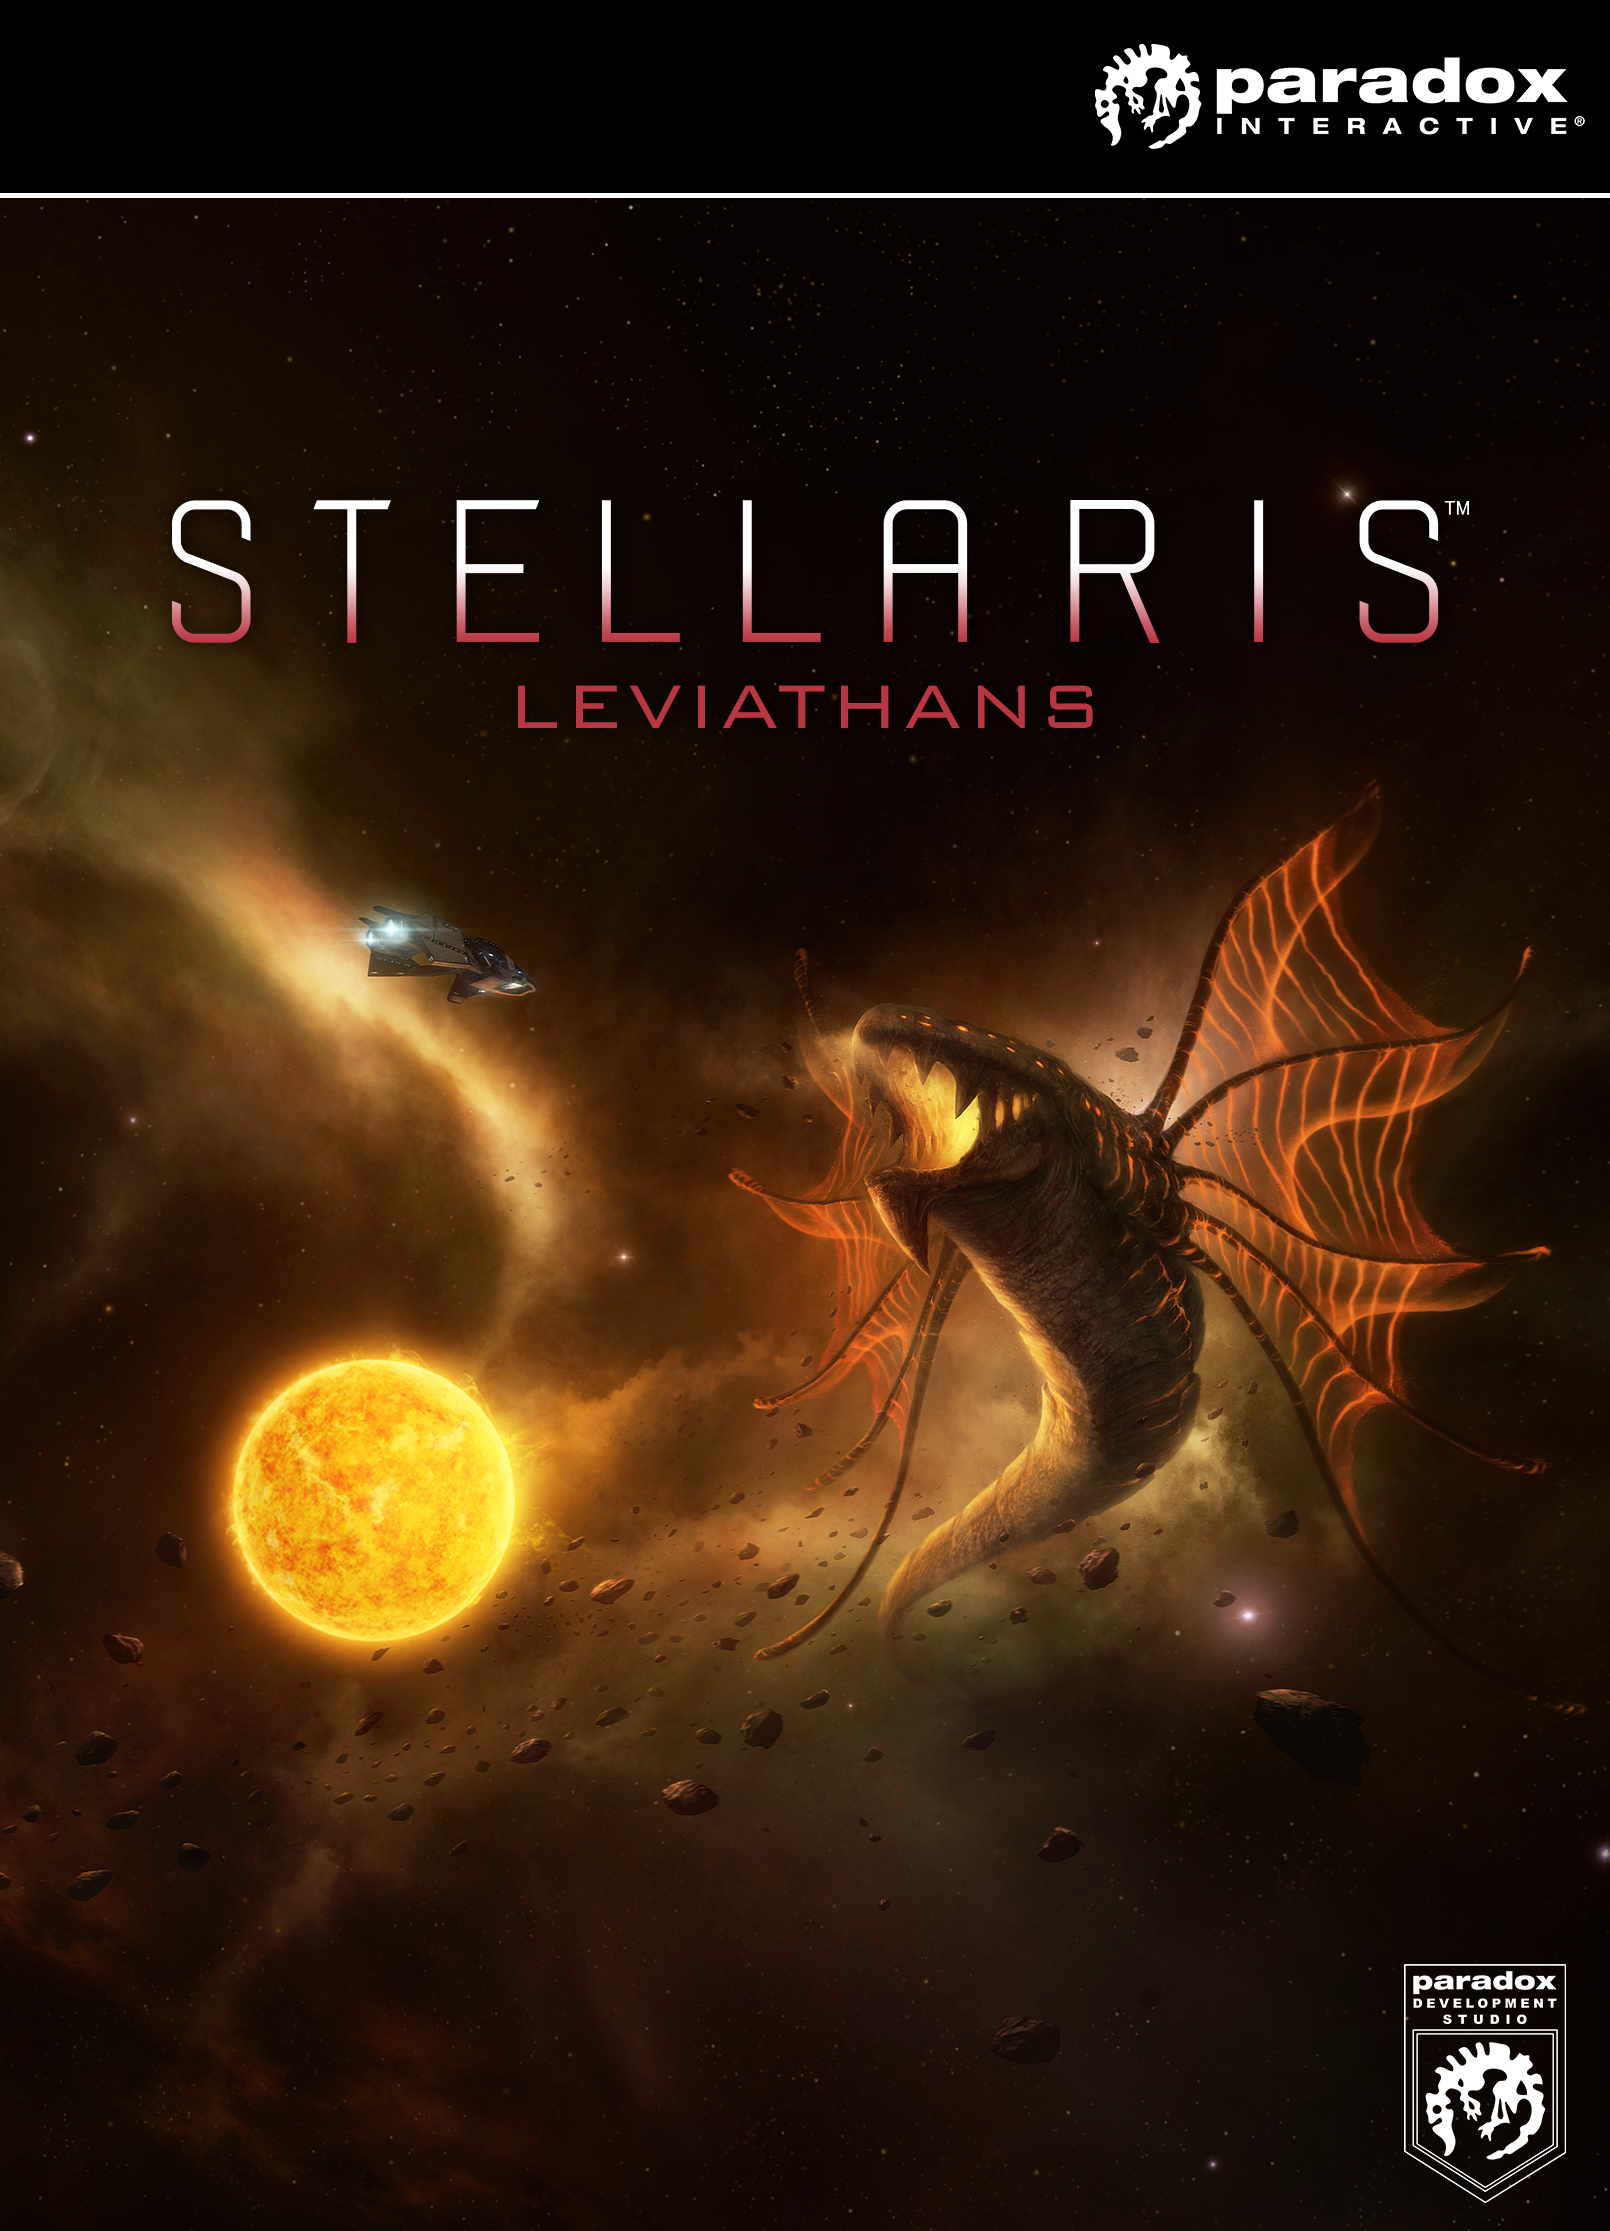 stellaris-leviathan-story-pack-pc-mac-code-steam